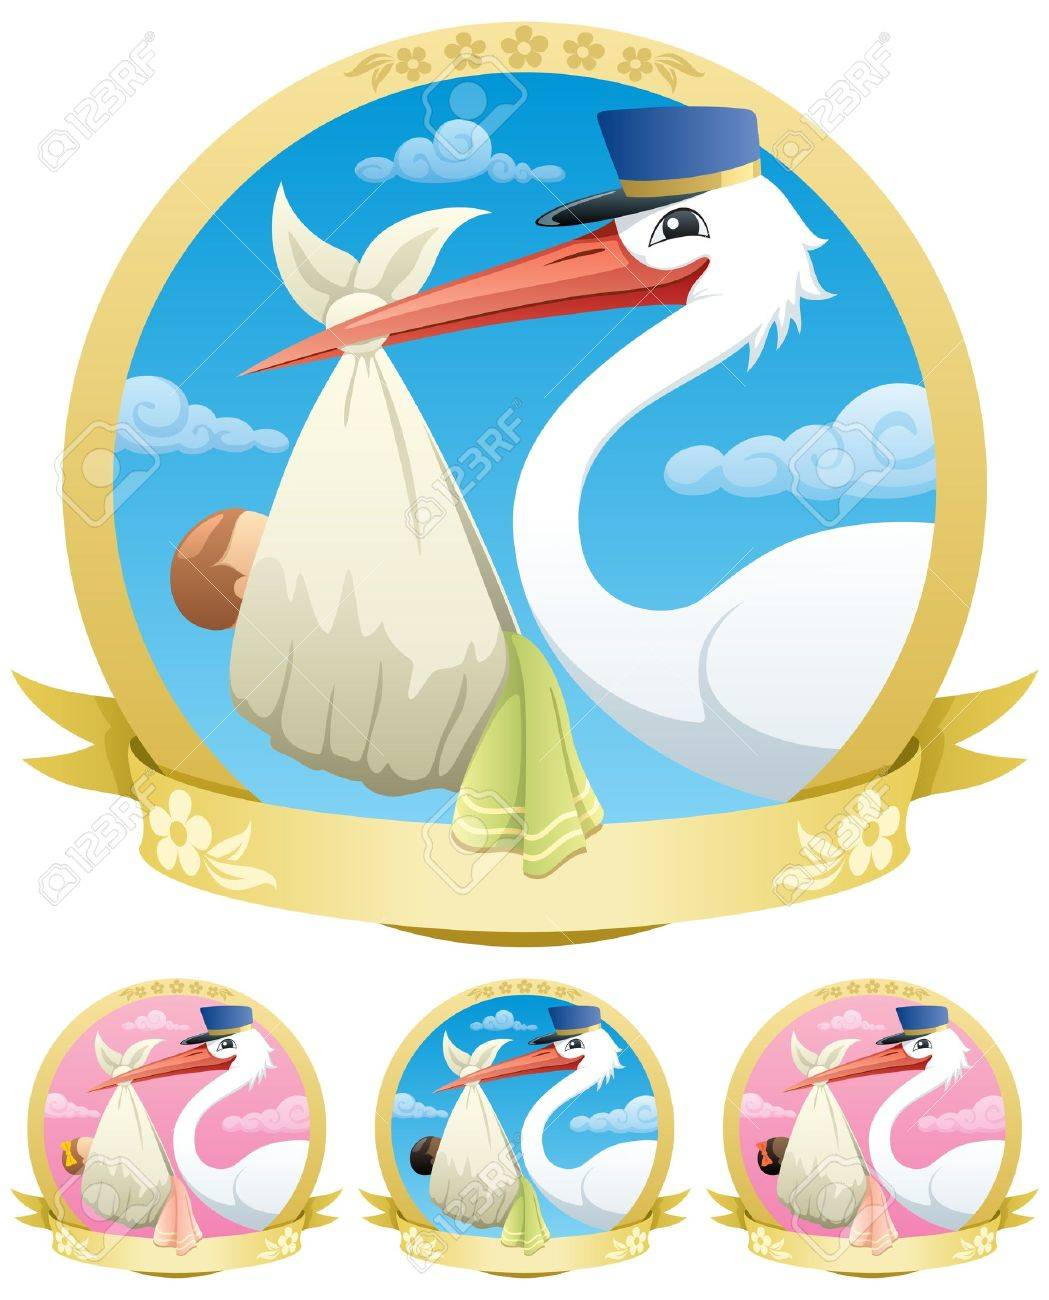 Stork is delivering a baby. The illustration is in 4 different versions. No transparency used. Basic (linear) gradients. - 11664087